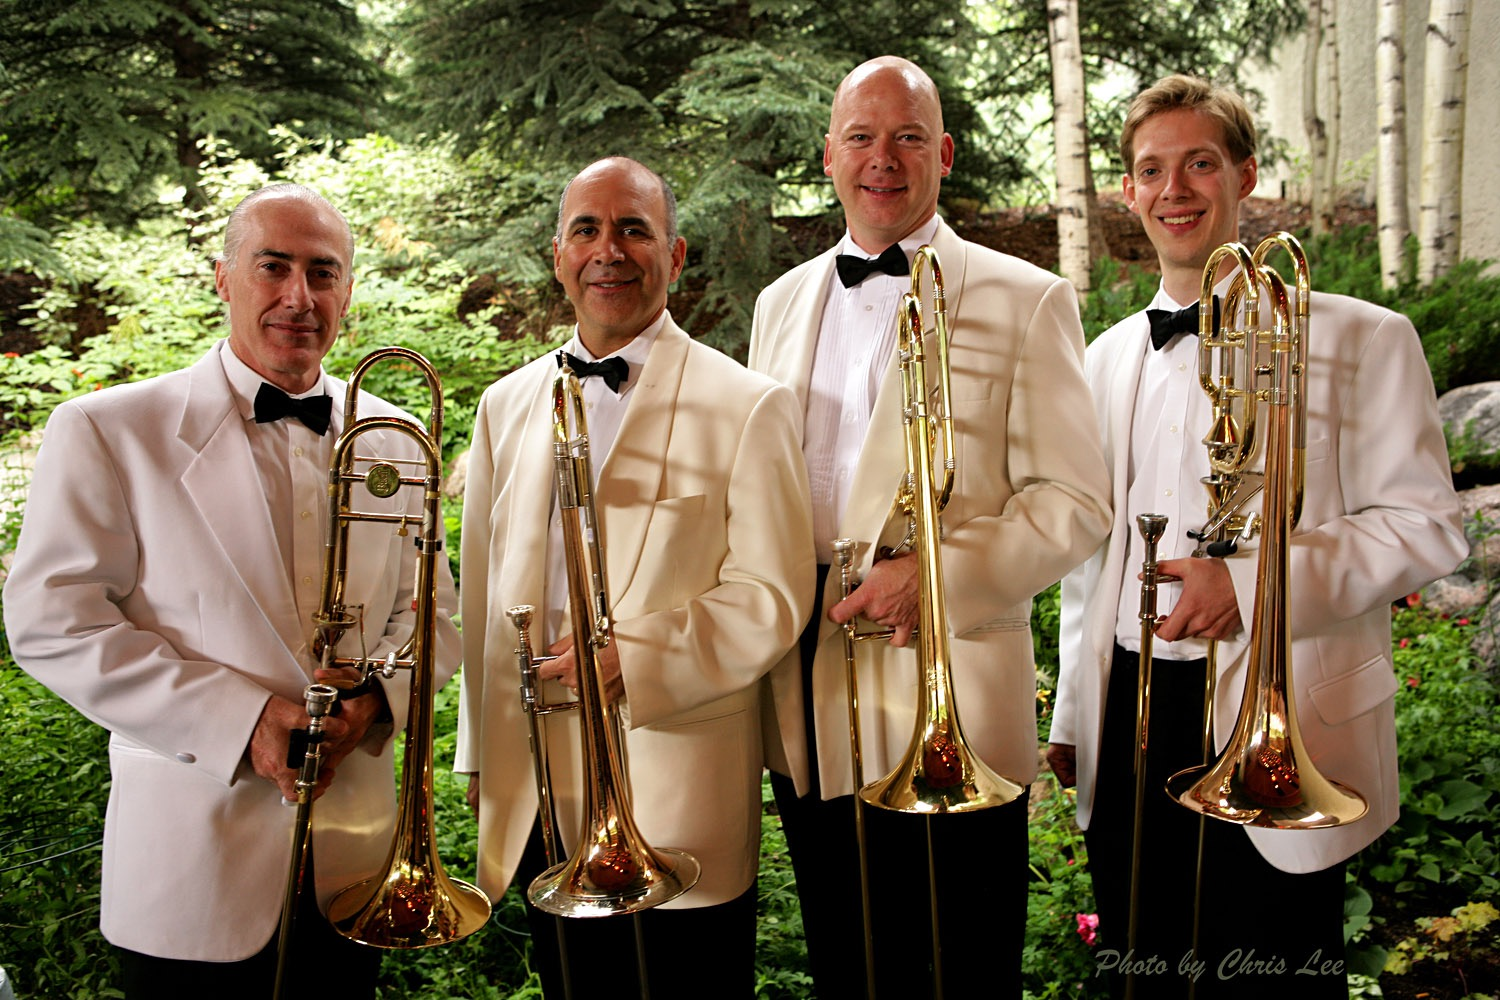 NY Phil Trombone Section Finlayson, Alessi, Ellefson, and Markey. www.davidbrubeck.com